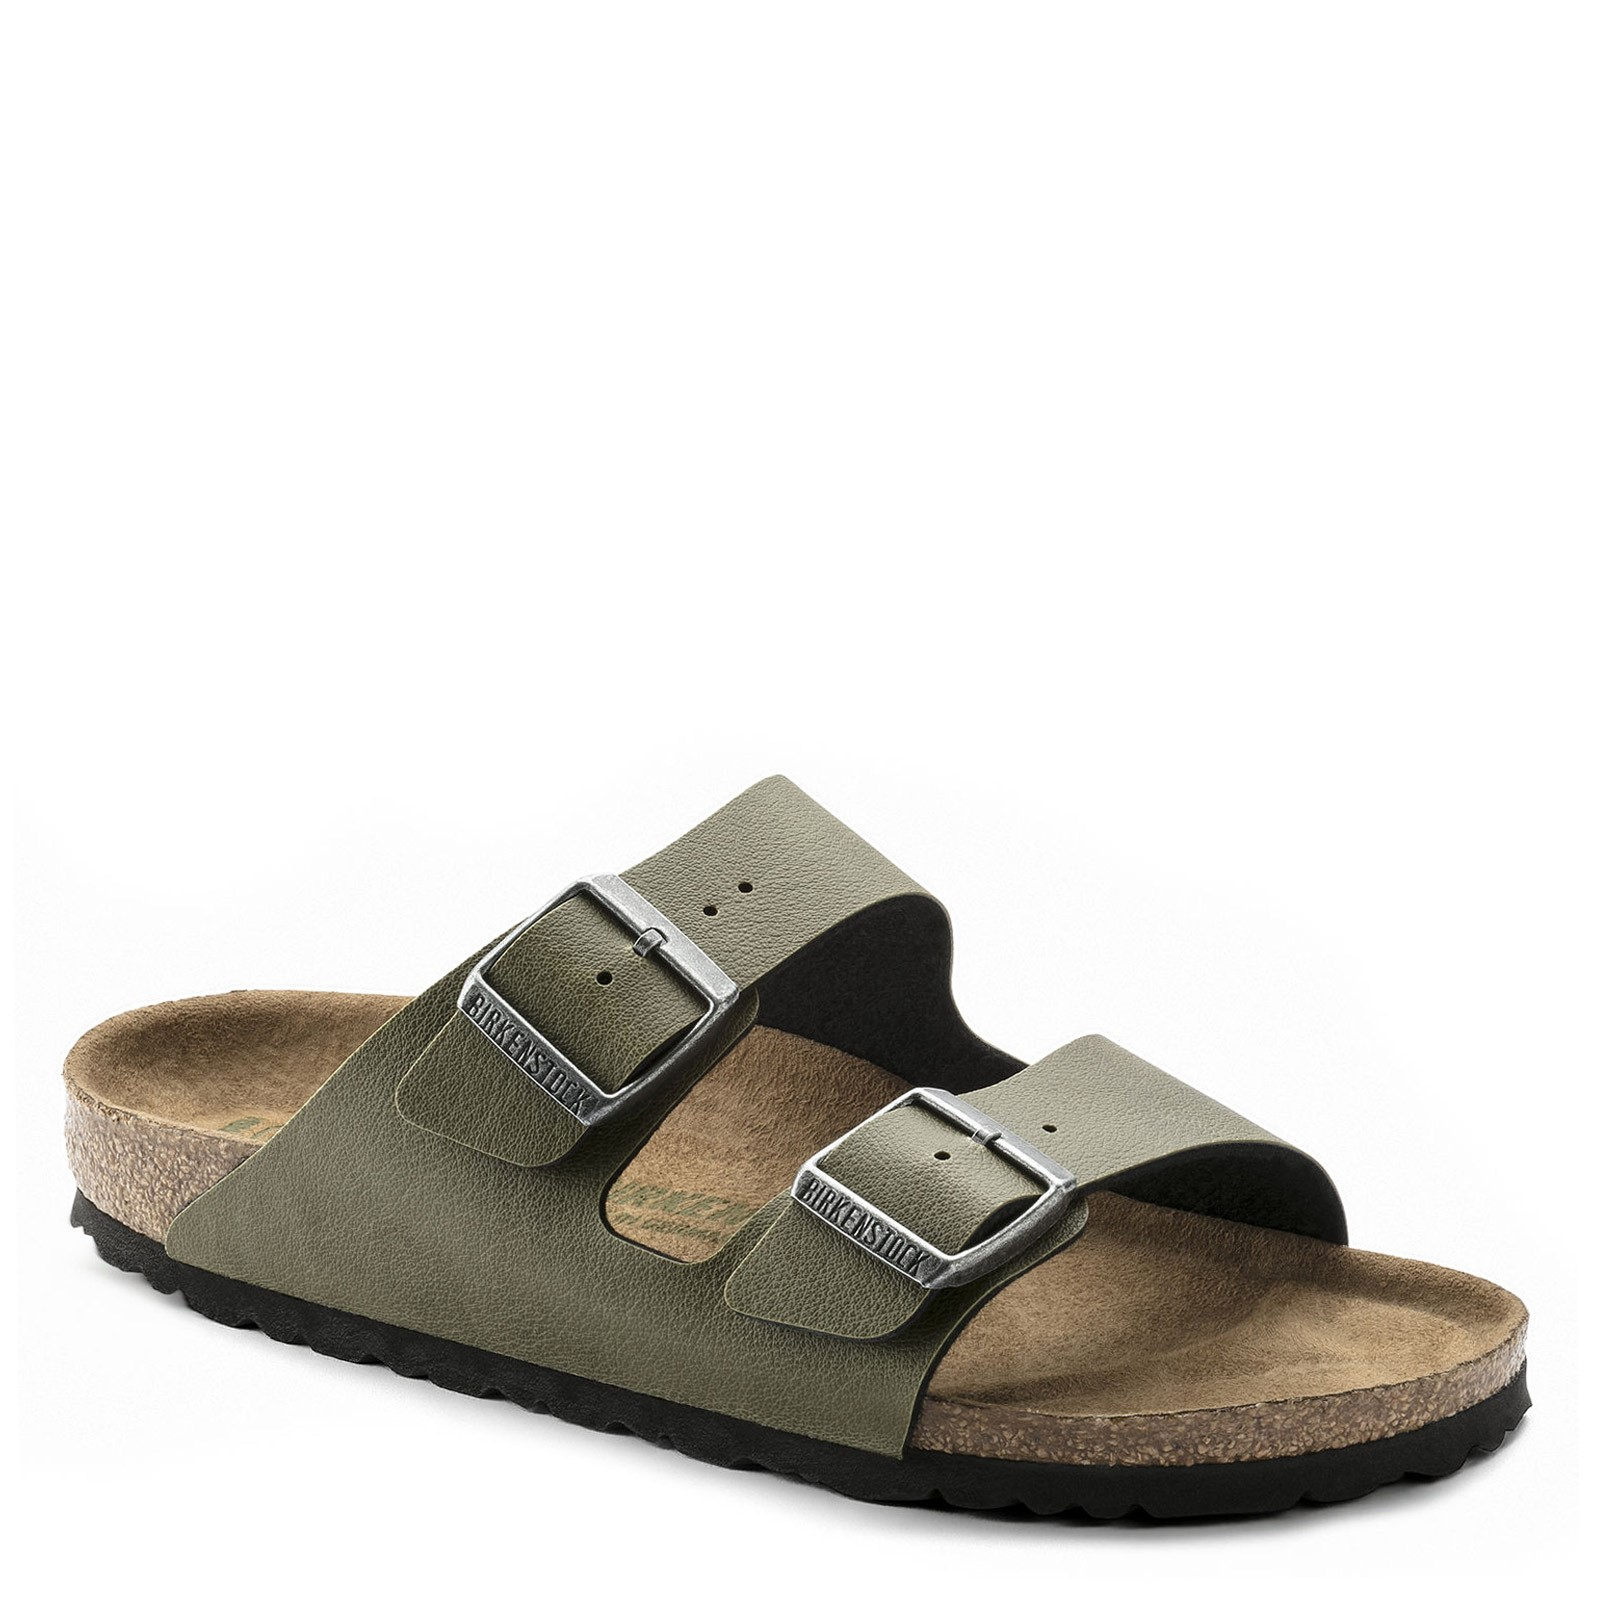 Women's Birkenstock, Arizona N fit Birkoflor Slide Sandals